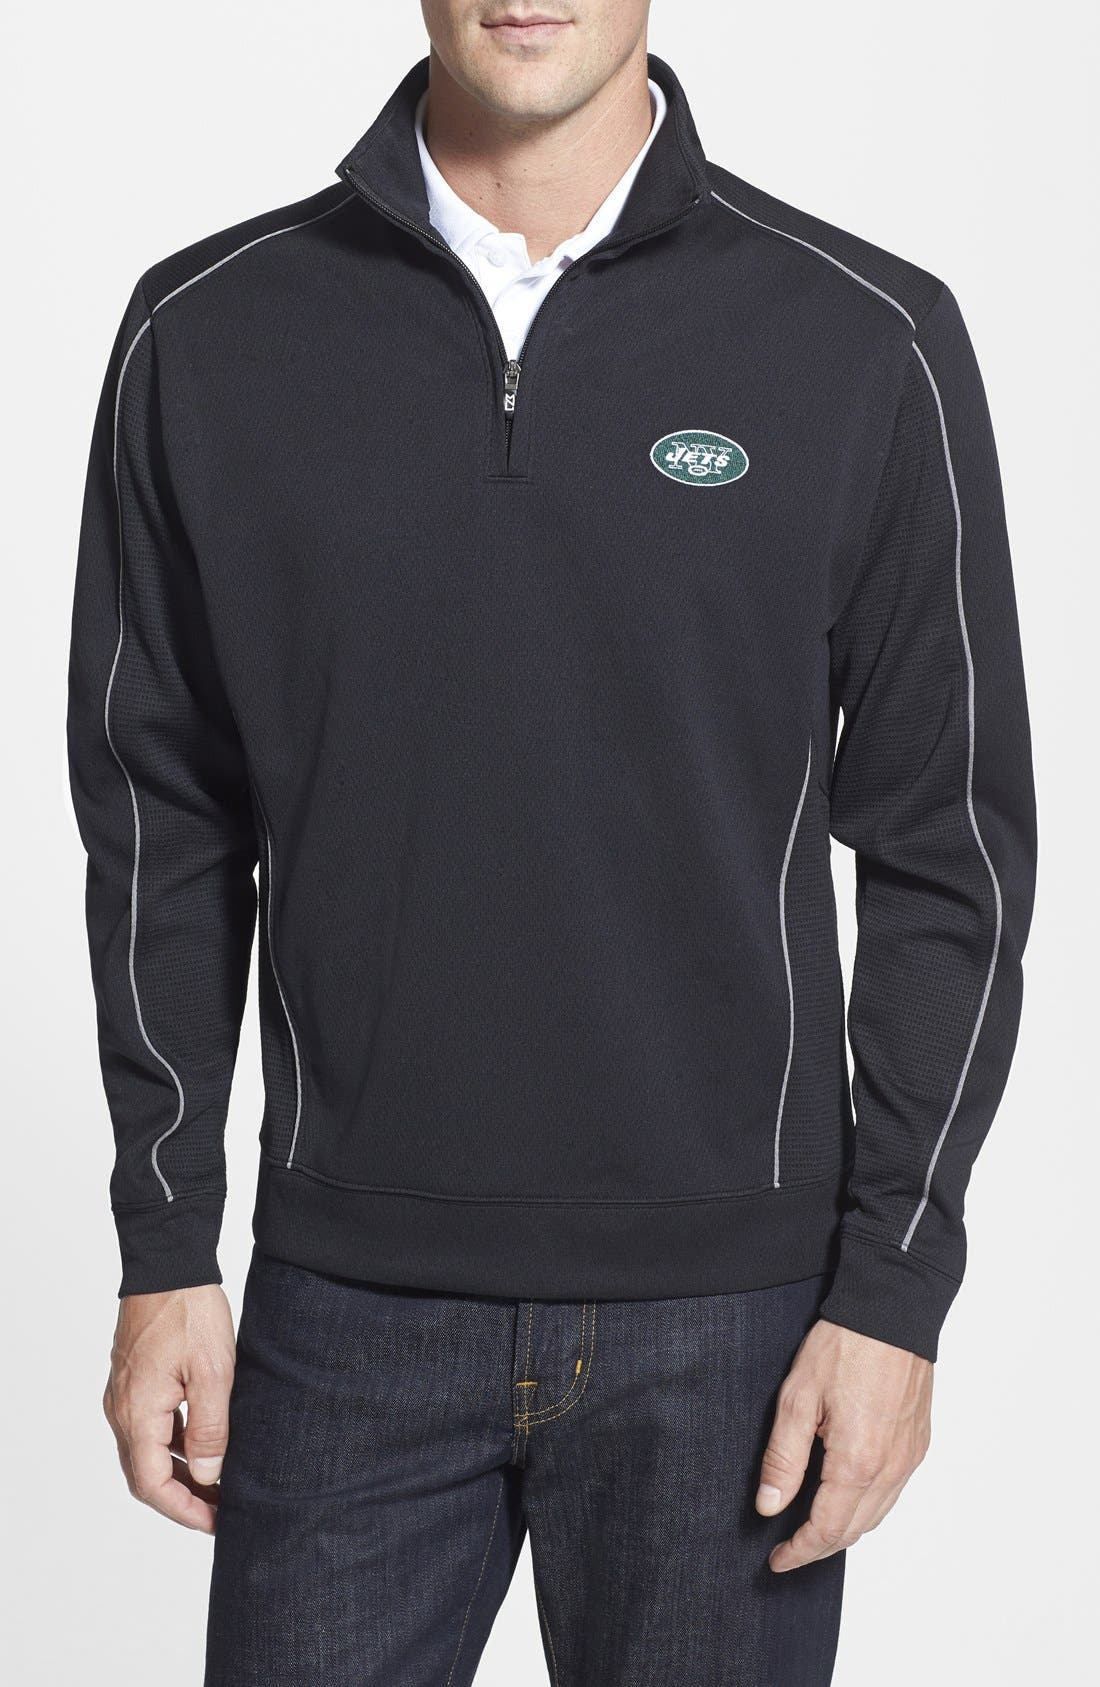 Cutter & Buck 'New York Jets - Edge' DryTec Moisture Wicking Half Zip Pullover (Big & Tall)